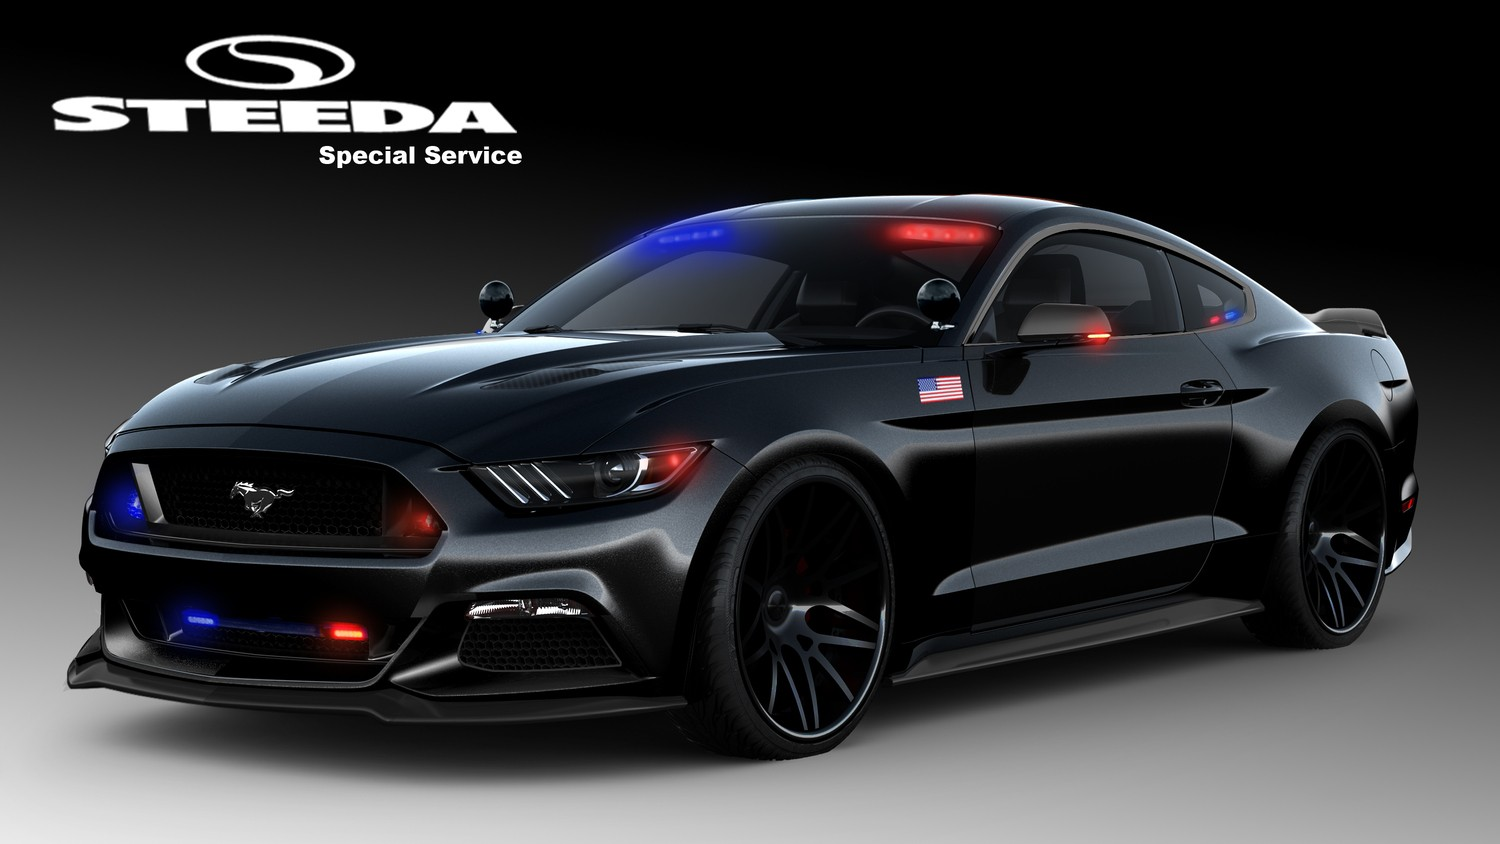 s550 mustang police car from steeda is ready to protect and serve autoevolution. Black Bedroom Furniture Sets. Home Design Ideas